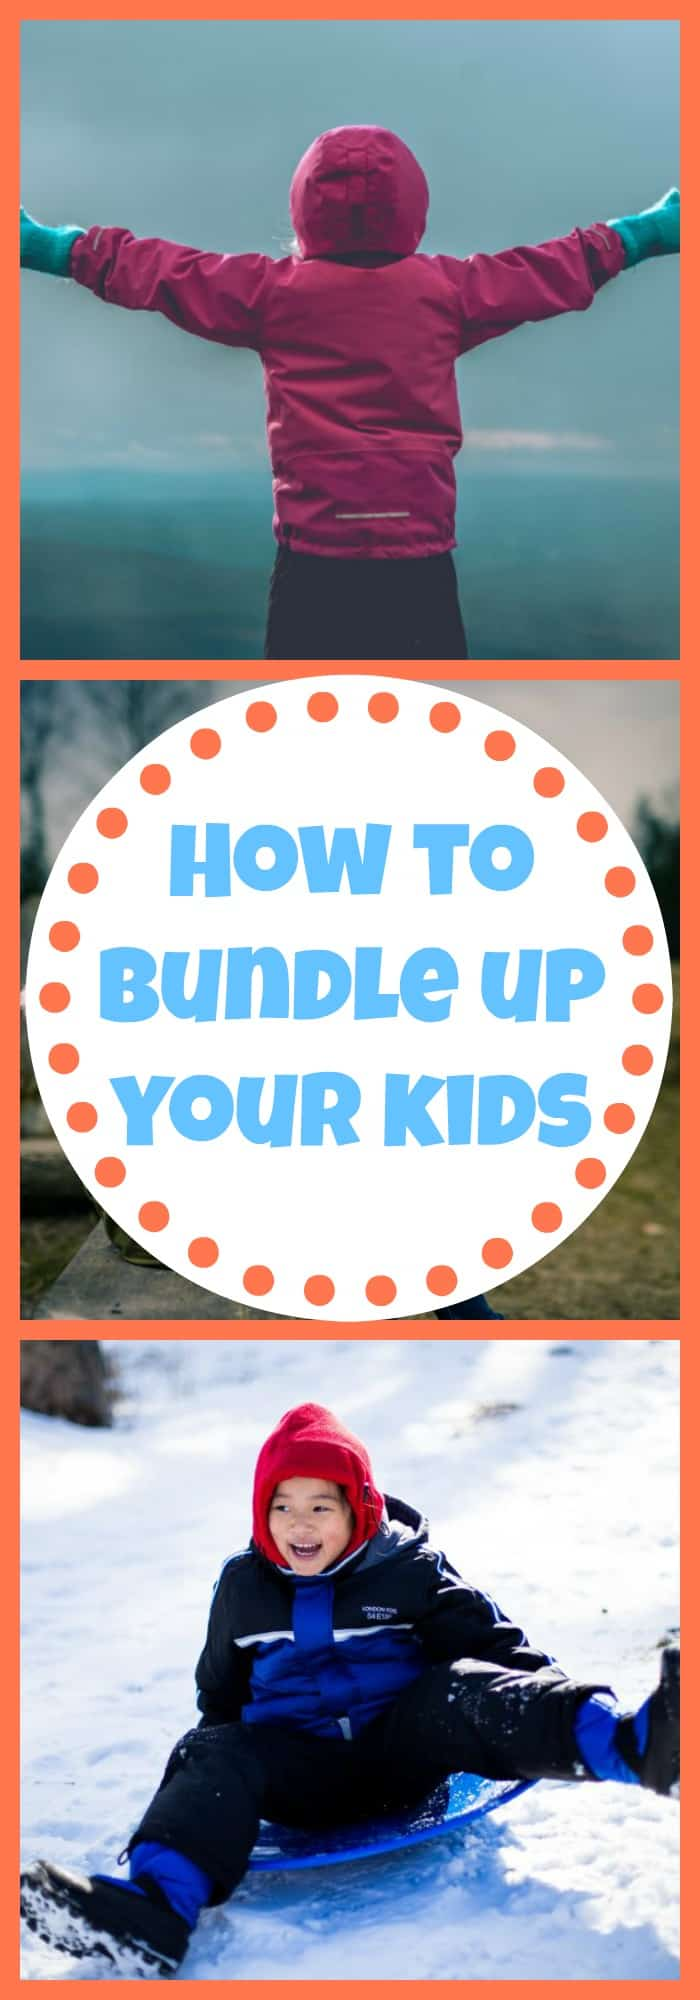 How to Bundle Up Your Kids